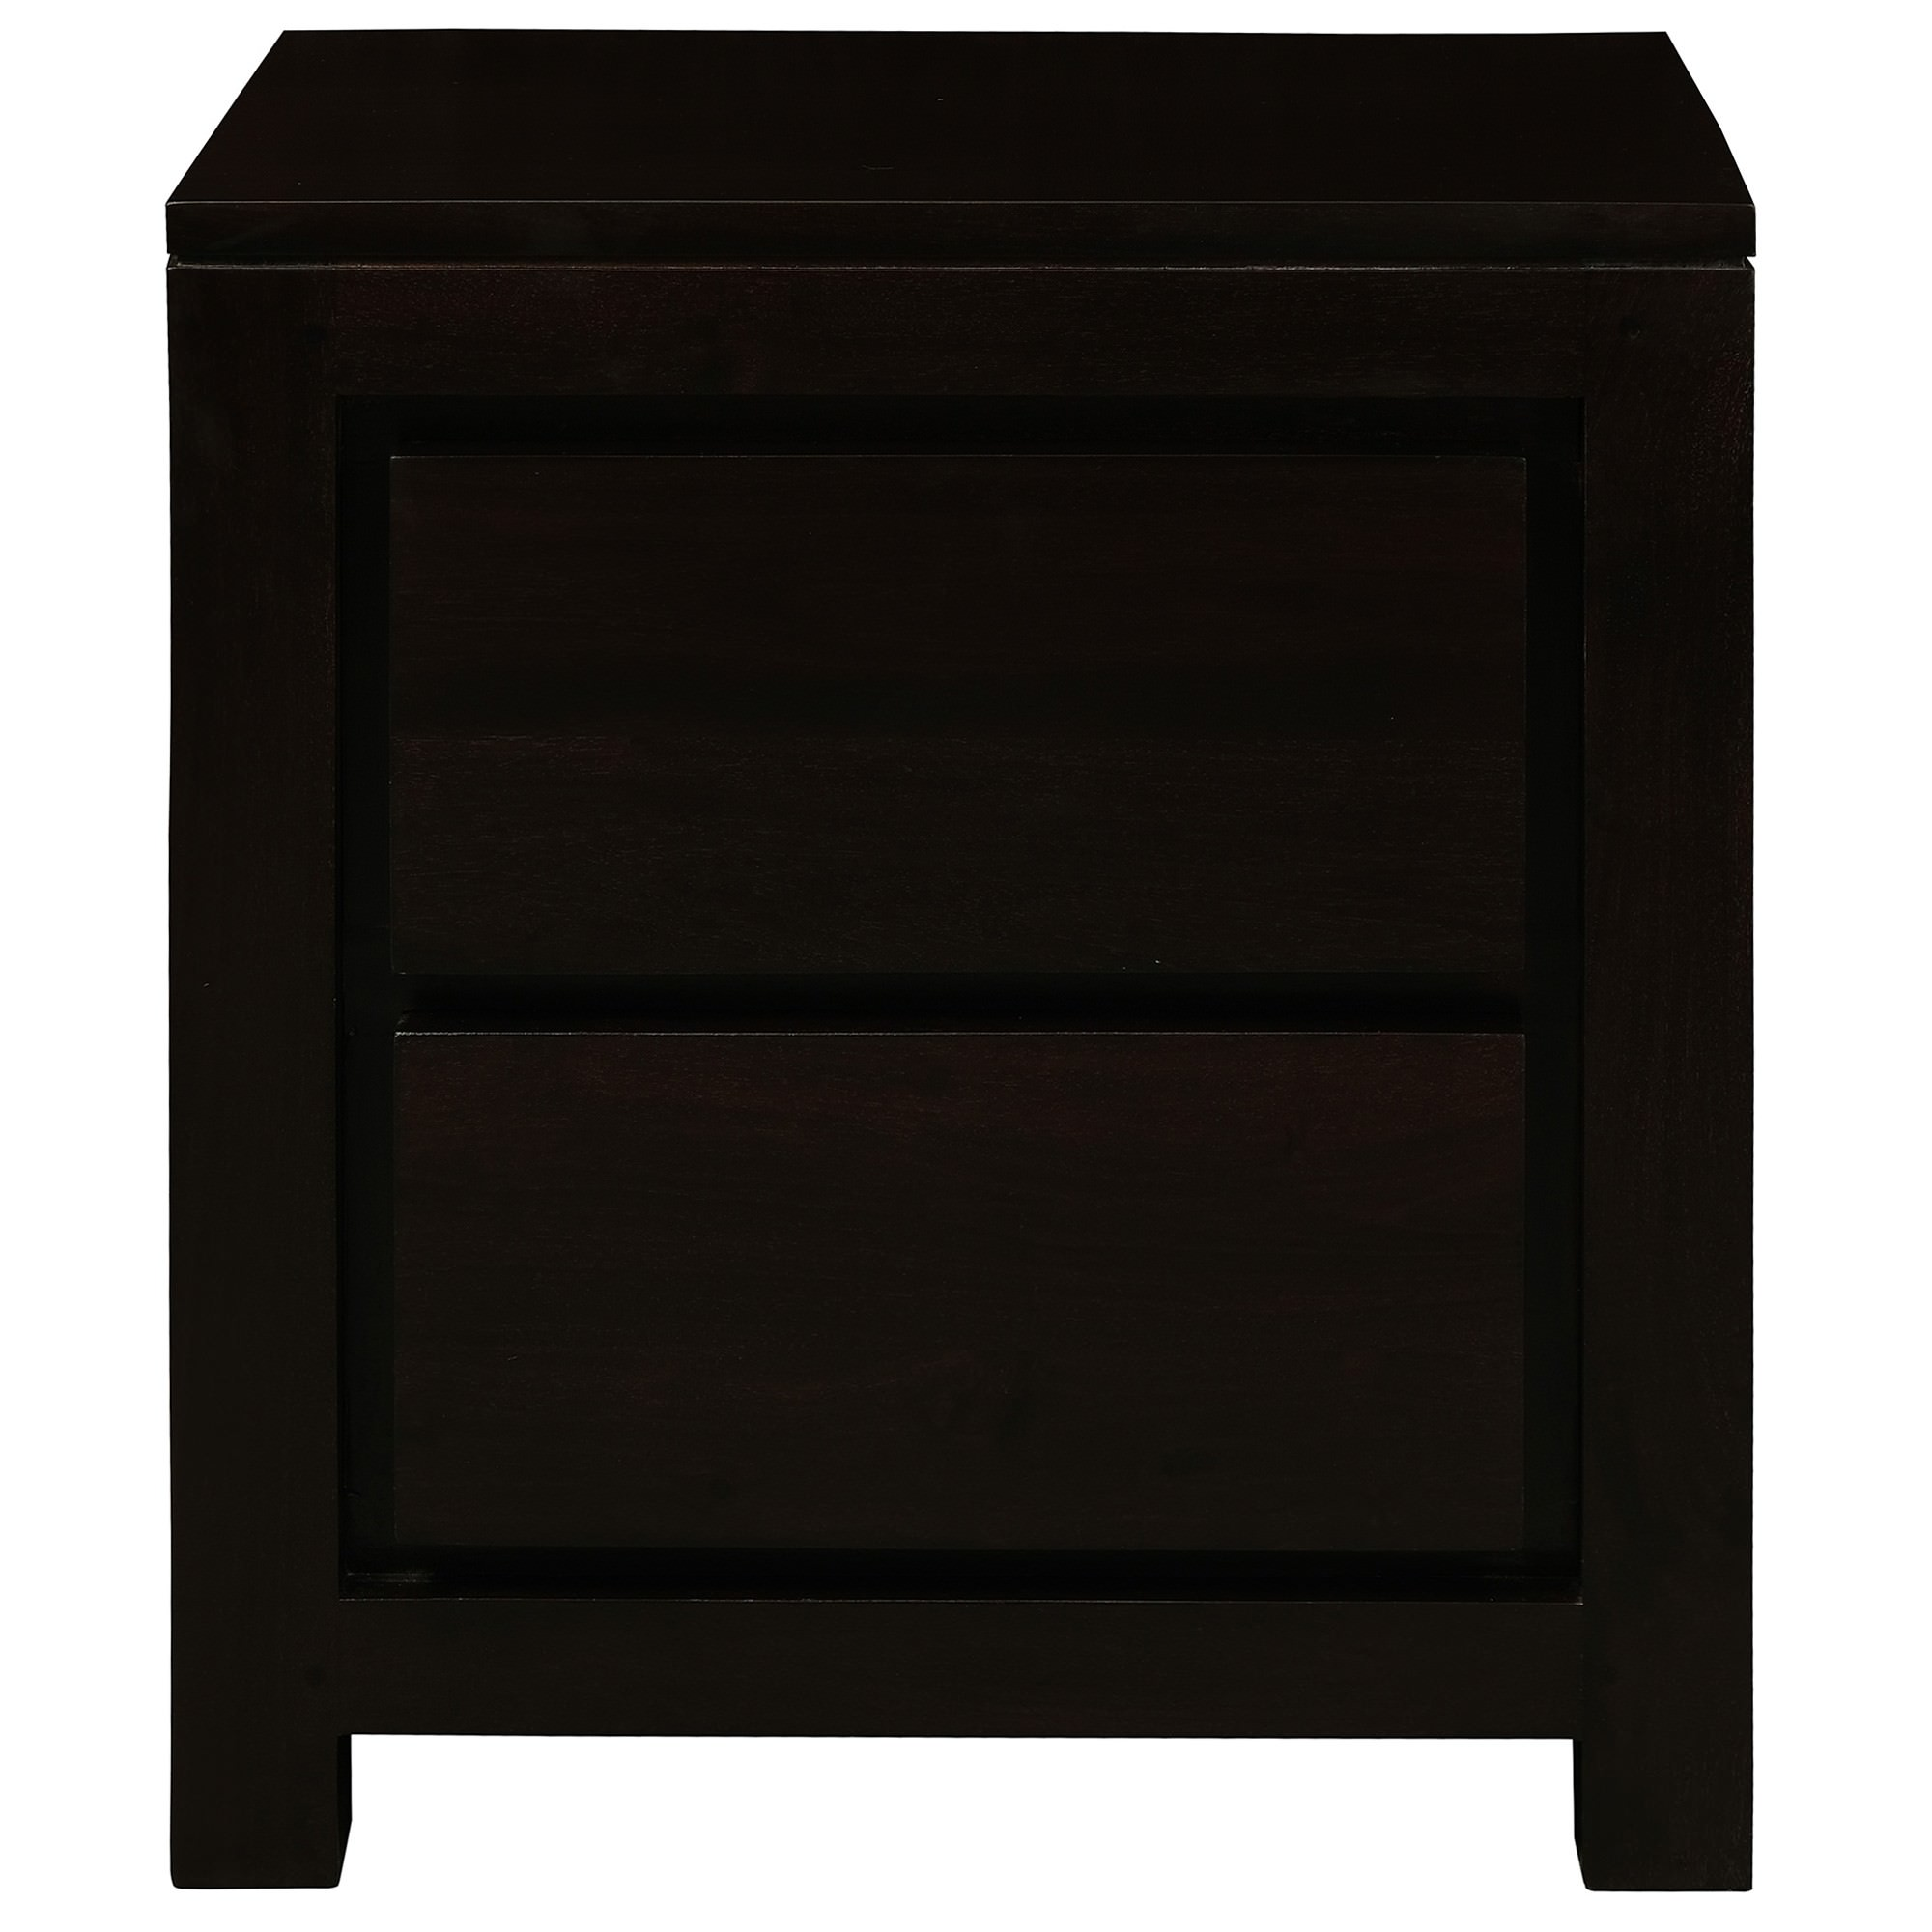 Amsterdam Solid Mahogany Timber 2 Drawer Bedside Table - Chocolate